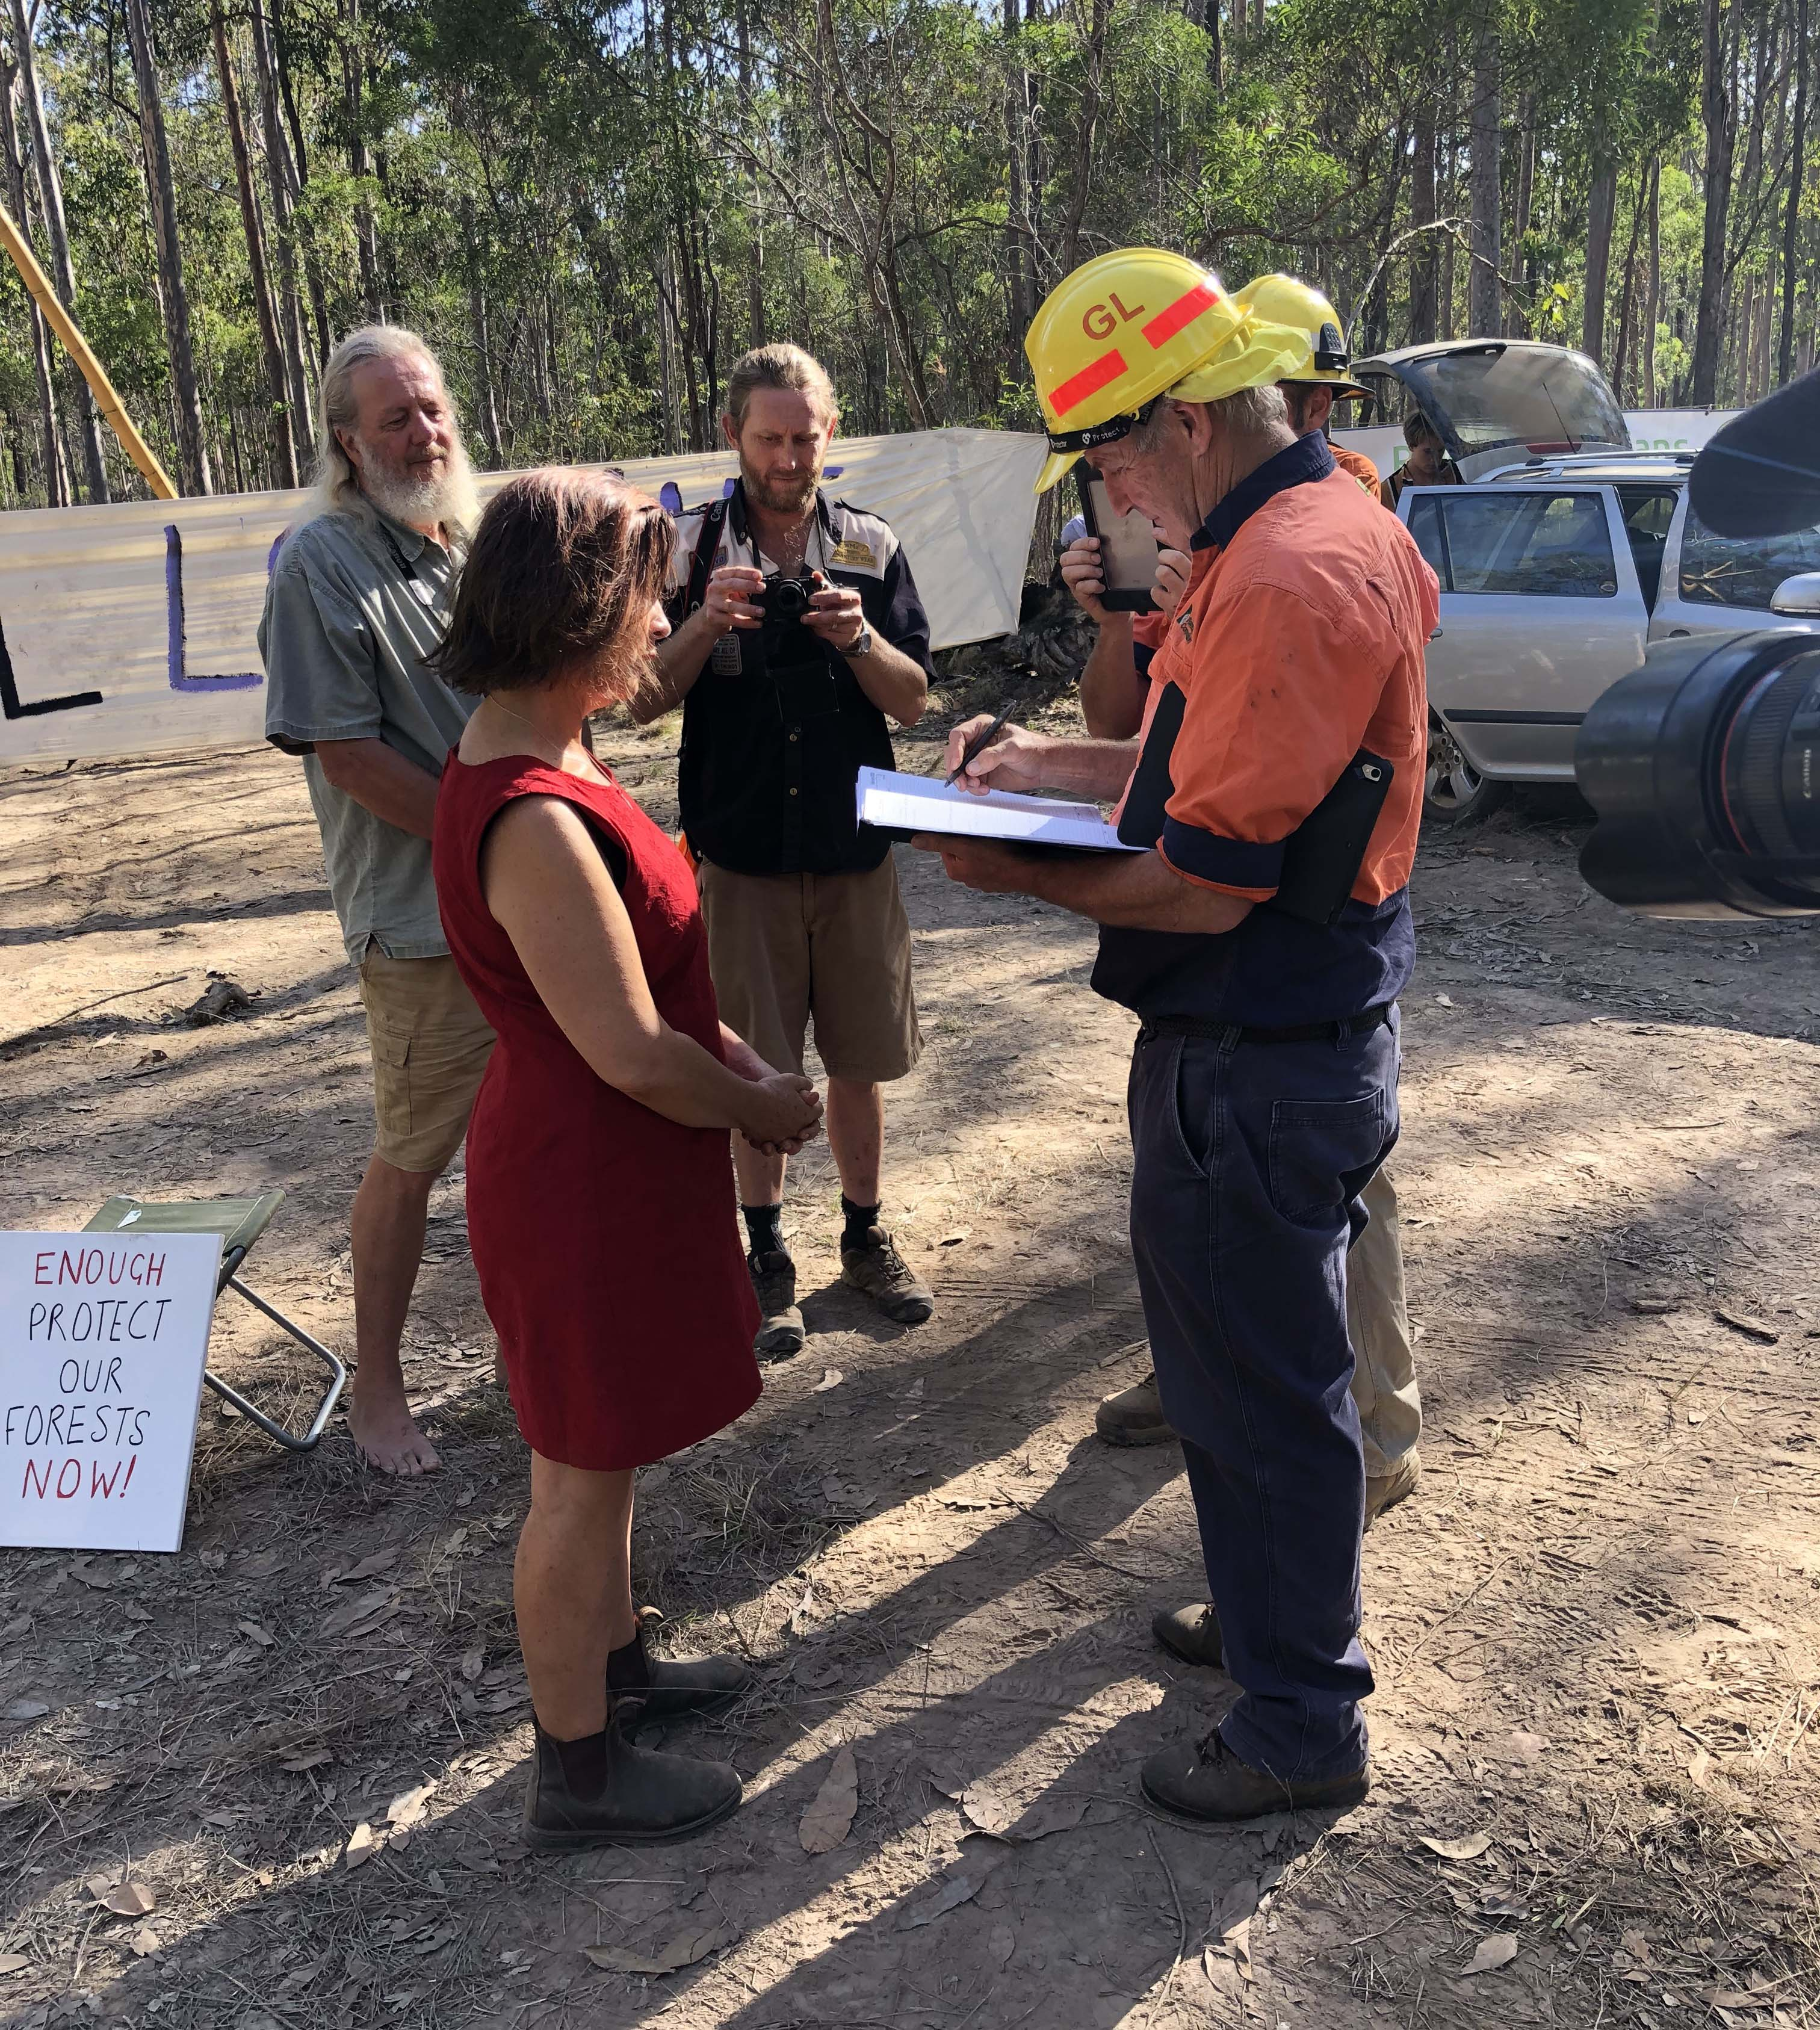 Greens MP fined at logging protest protecting koalas - Dawn Walker MP